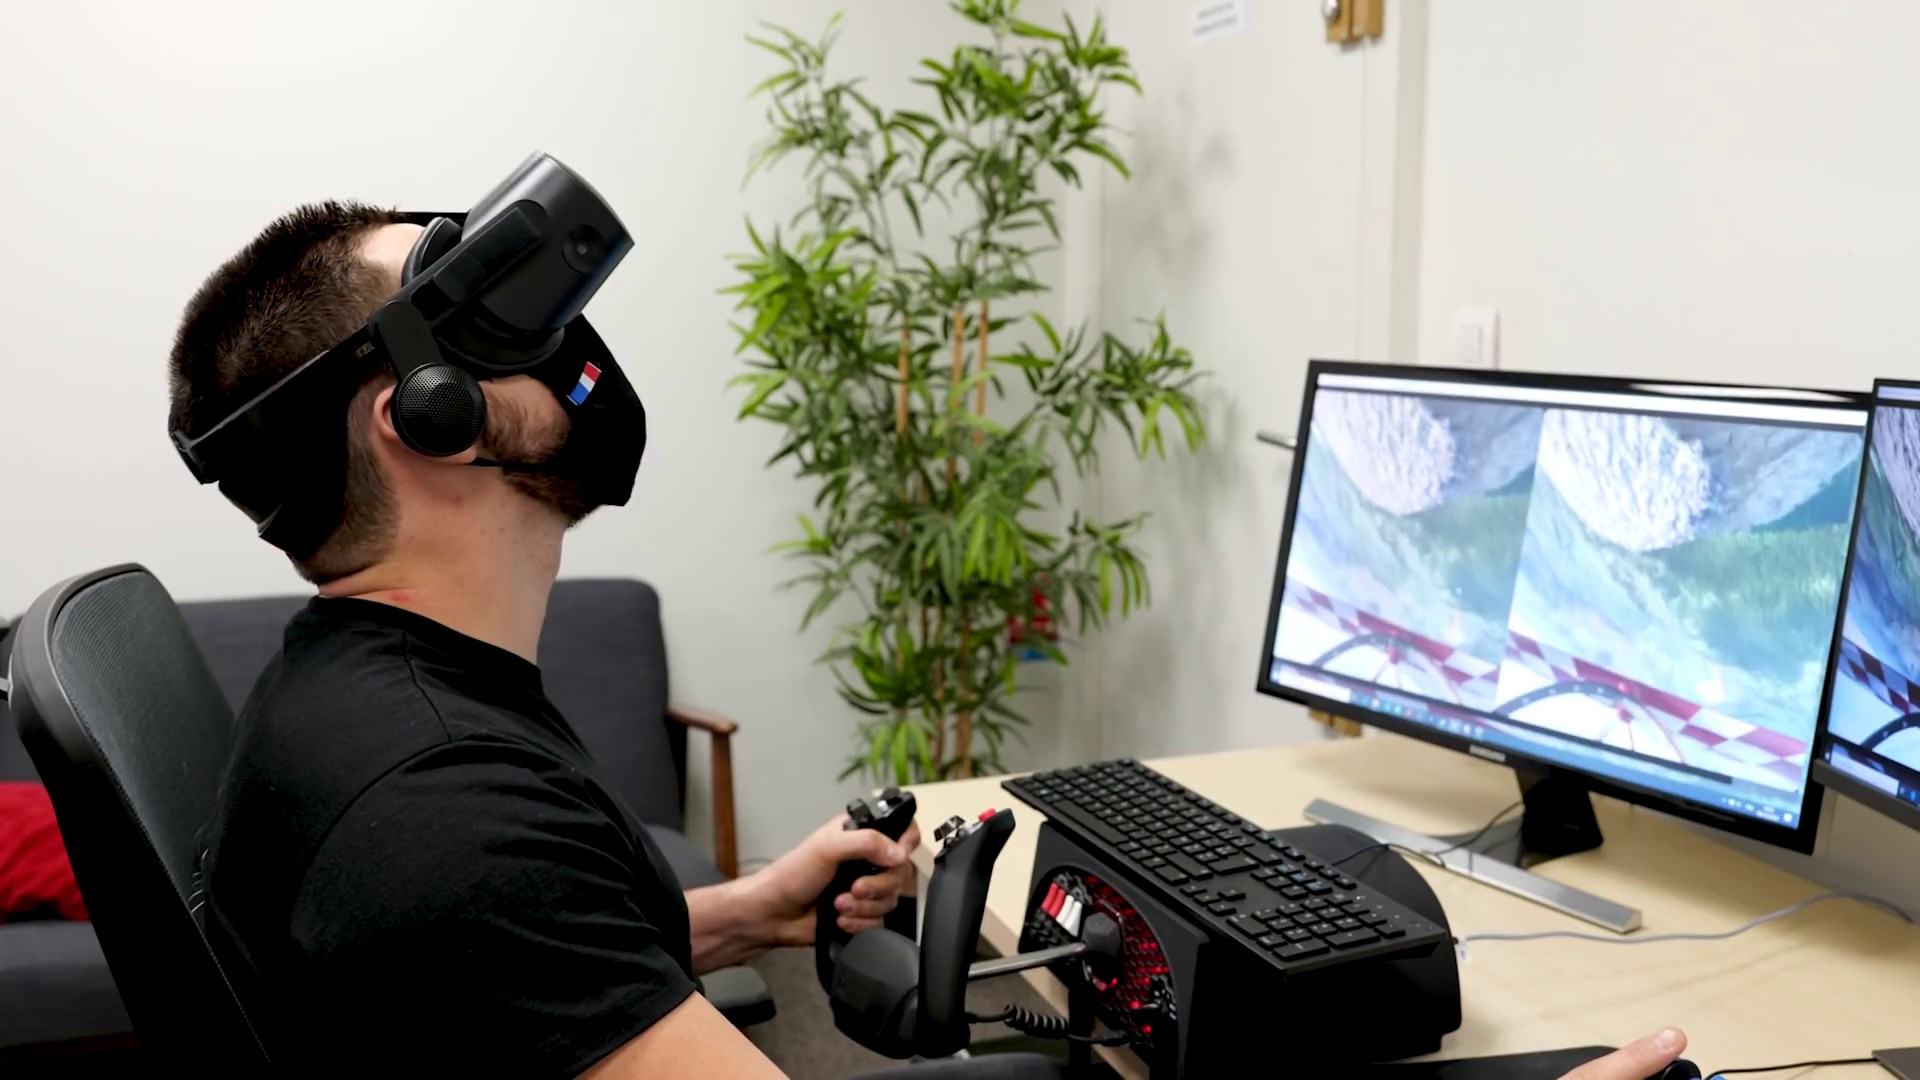 Microsoft, Gaming, Spiele, Games, Virtual Reality, VR, Flight Simulator 2020, Oculus, Windows Mixed Reality, Headsets, Steam VR